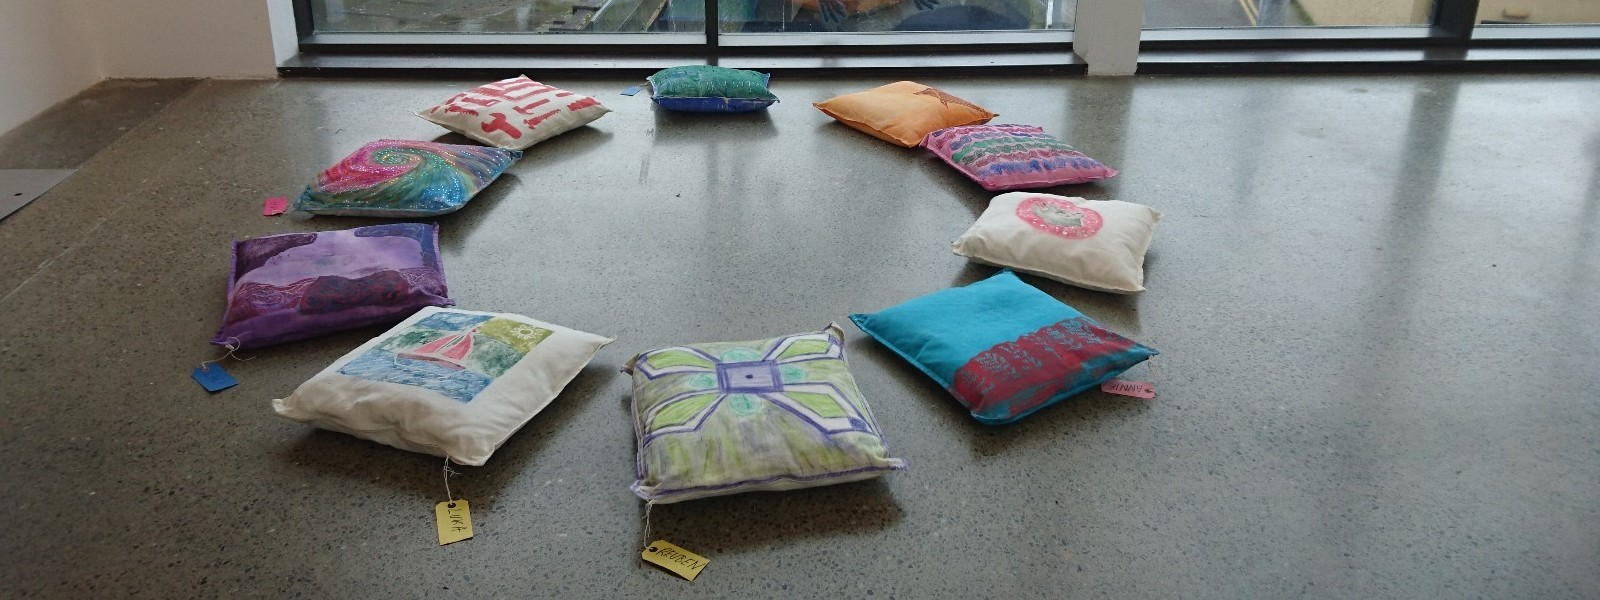 A new early years programme including Curiosity Club, Curatorial Project and dance